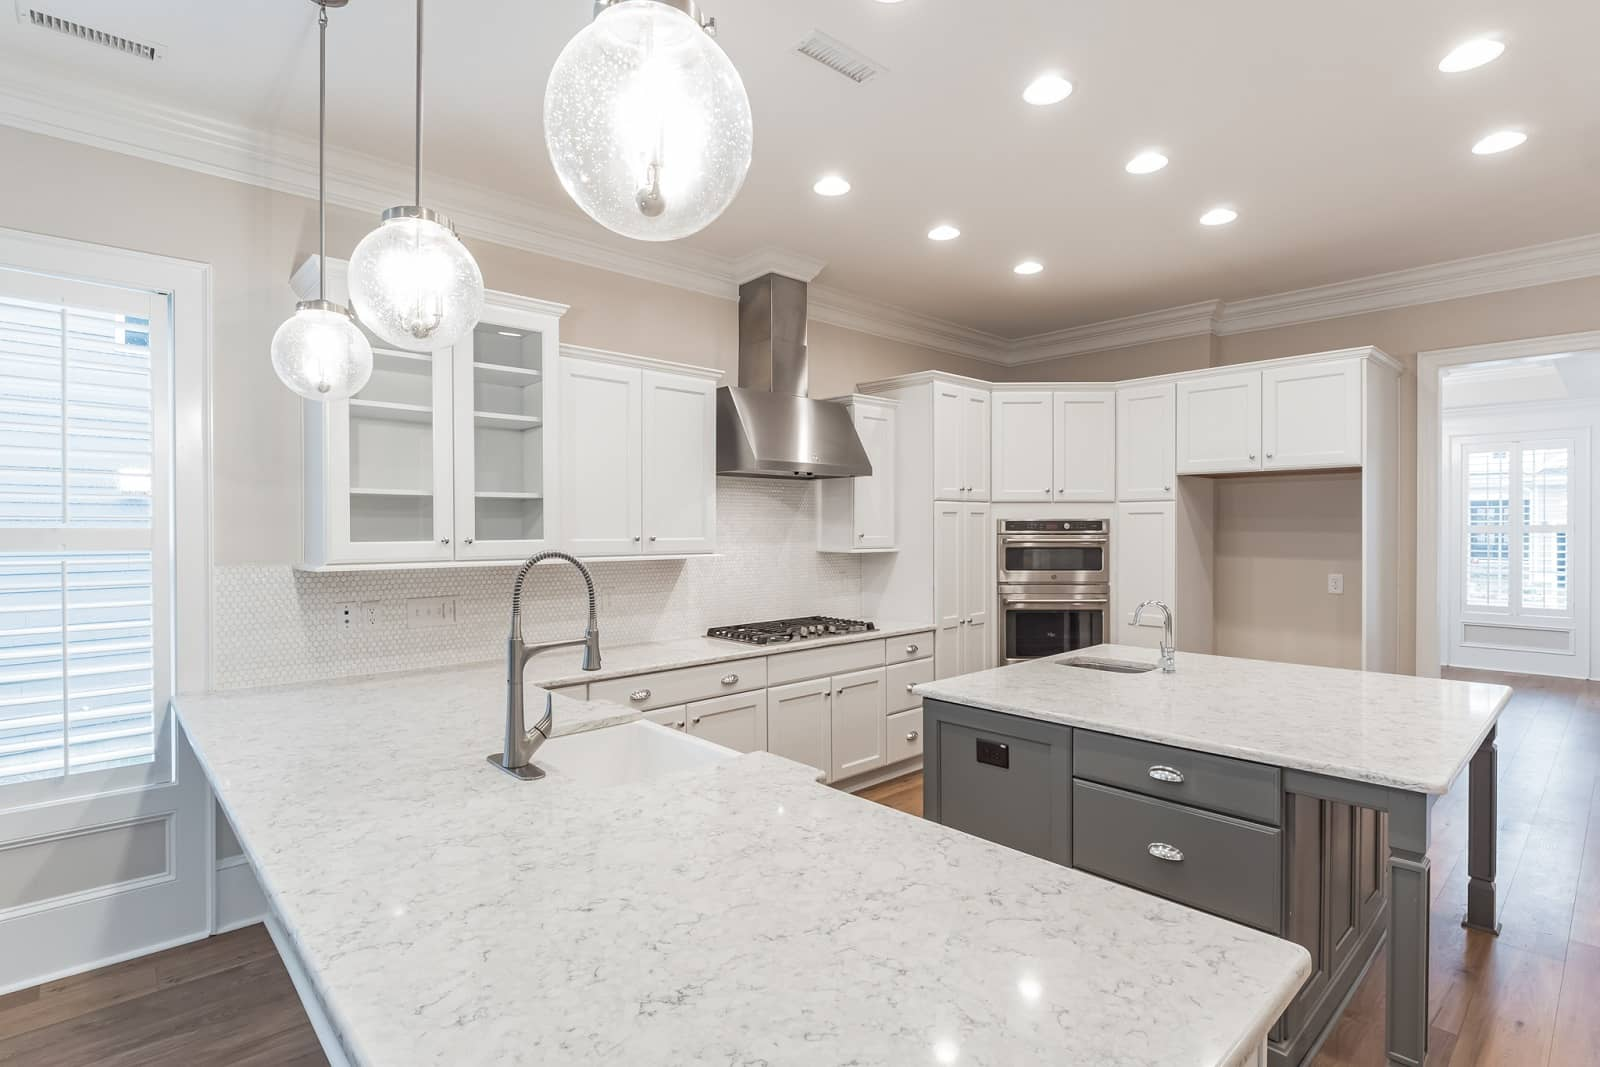 Real Estate Photography in Apex - NC - USA - Kitchen View